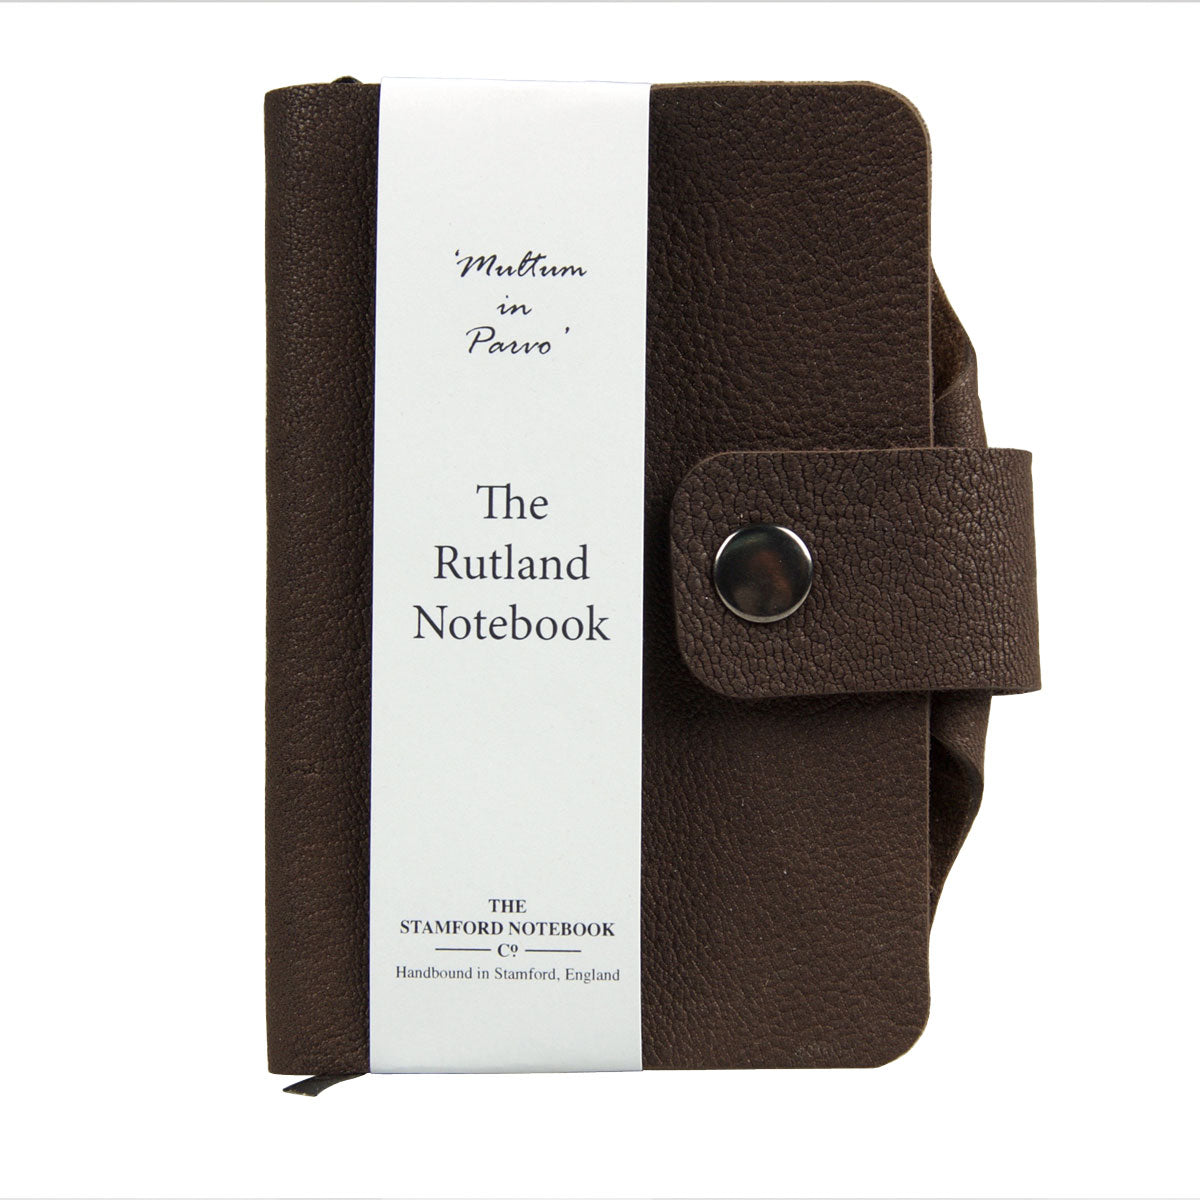 dark brown luxury leather handbound rutland notebook